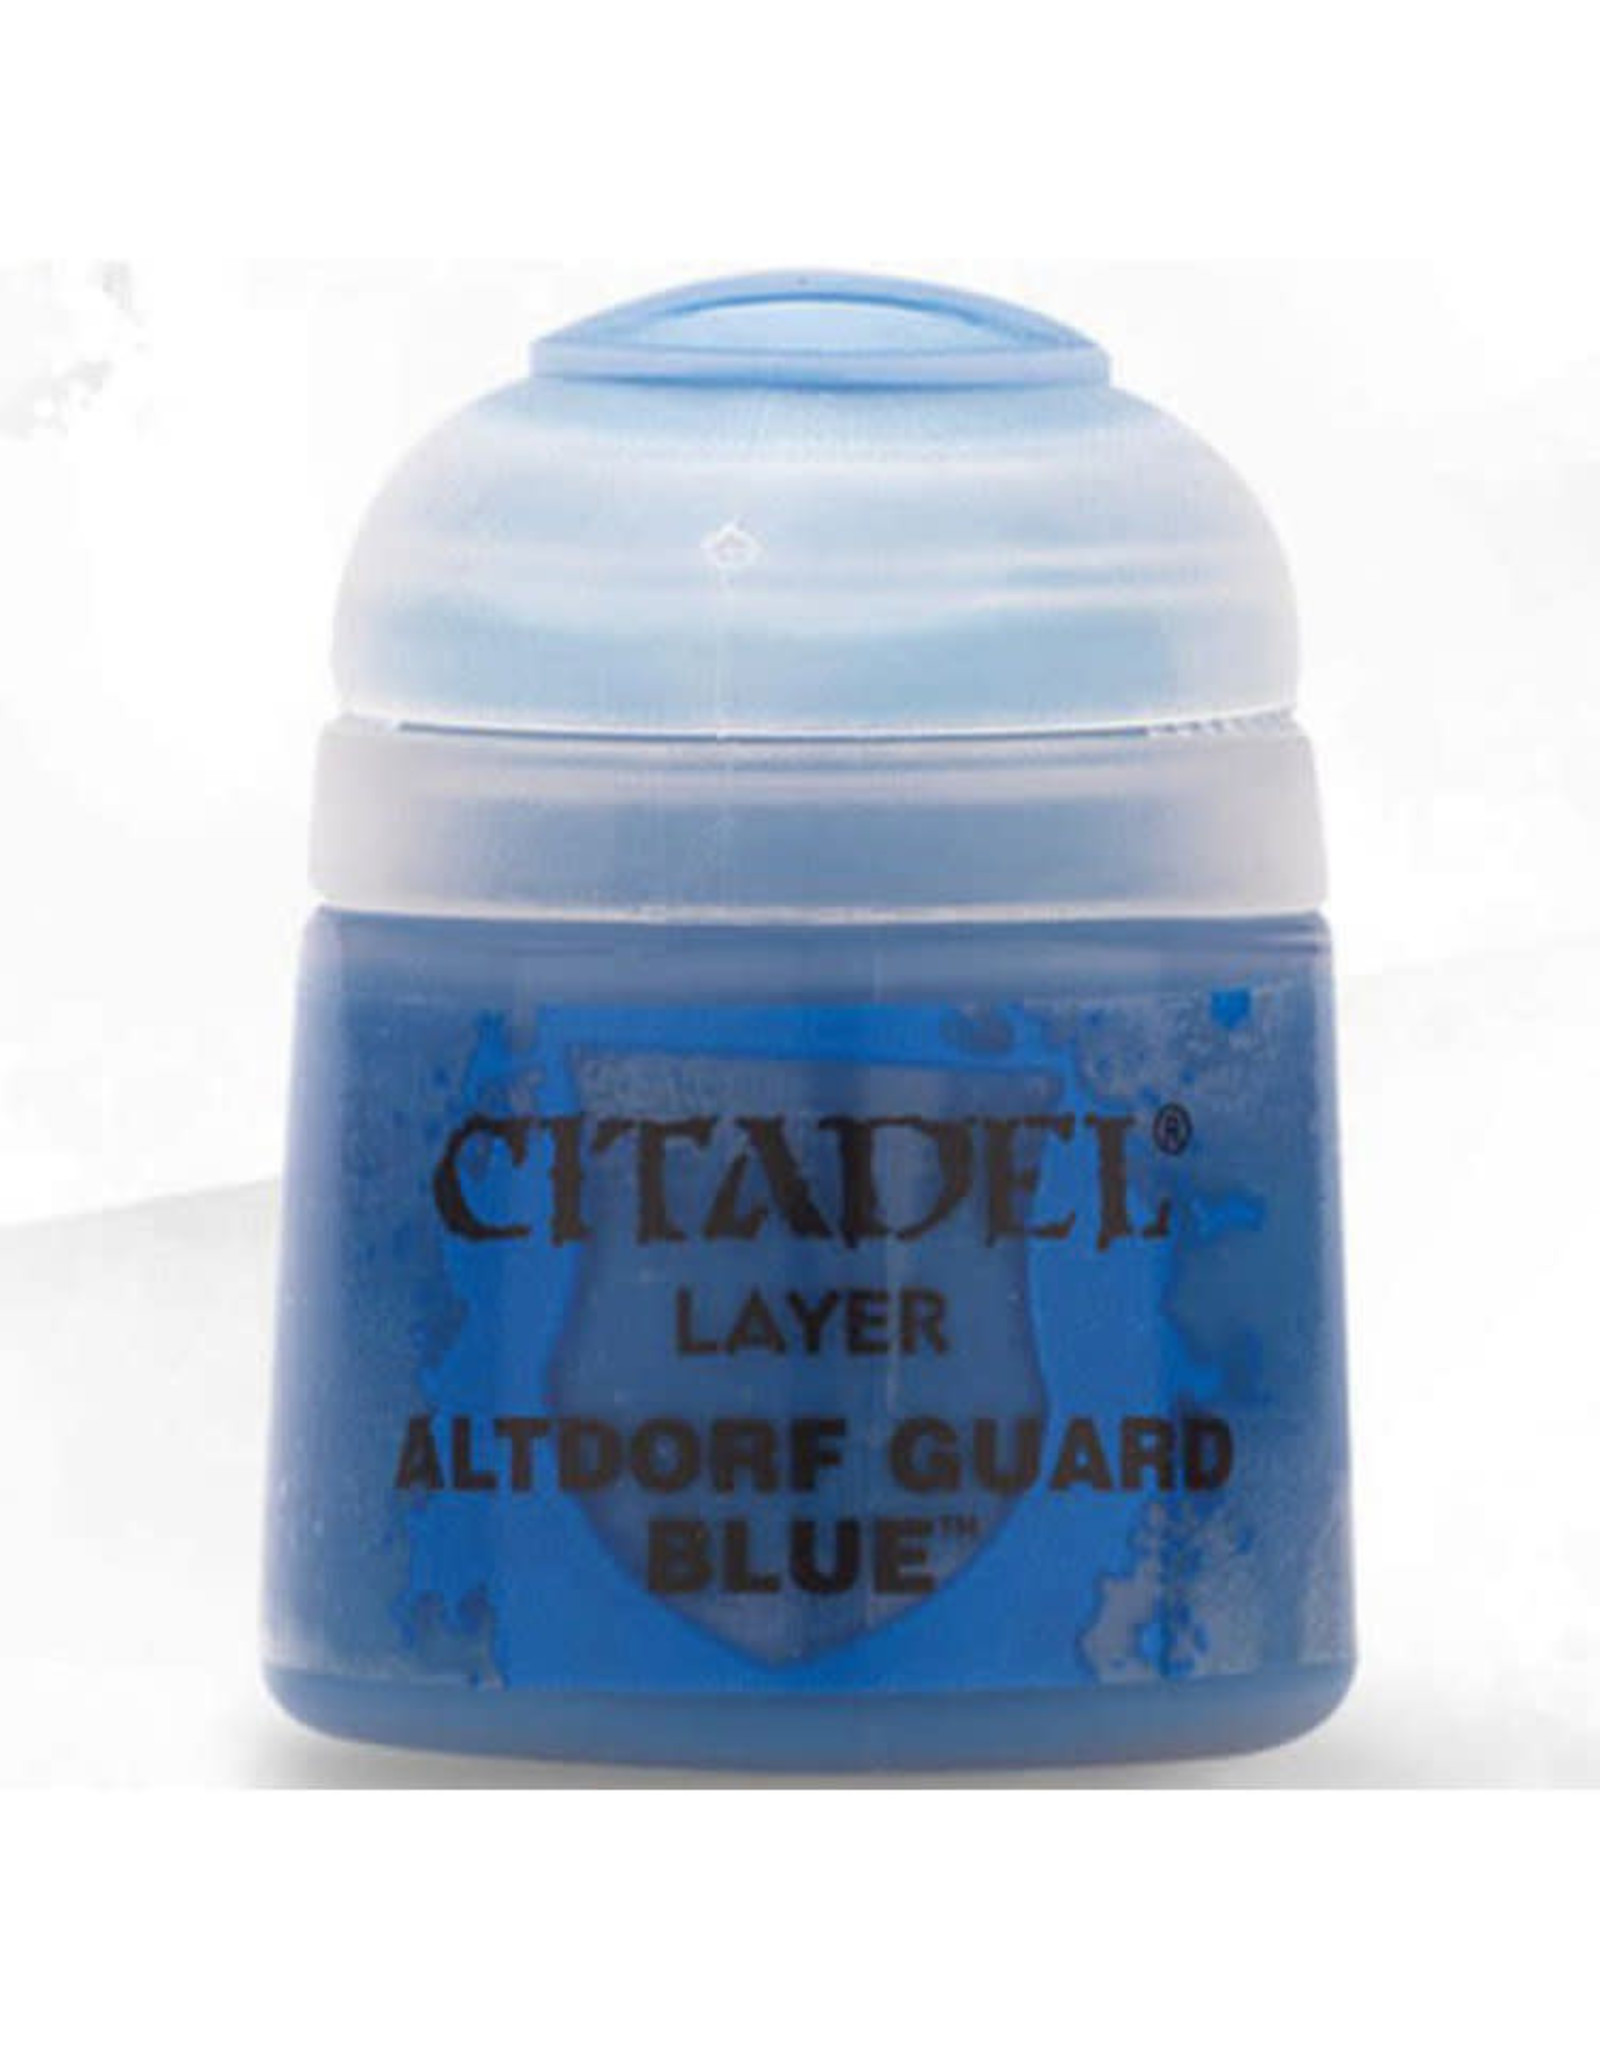 Games Workshop Citadel Paint: Altdorf Guard Blue 12ml